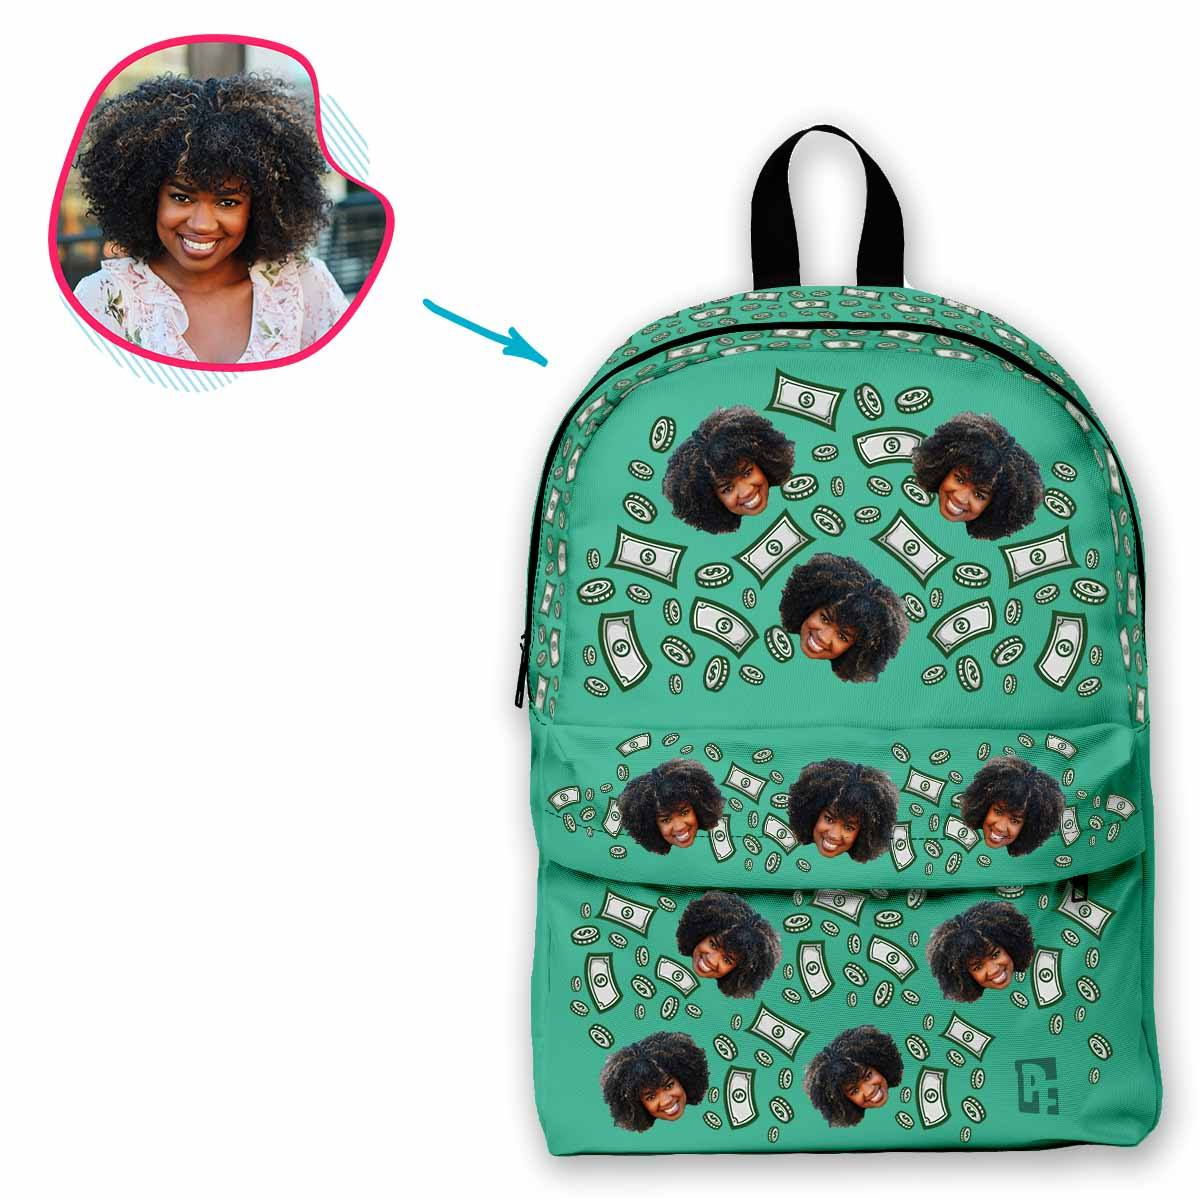 mint Money classic backpack personalized with photo of face printed on it